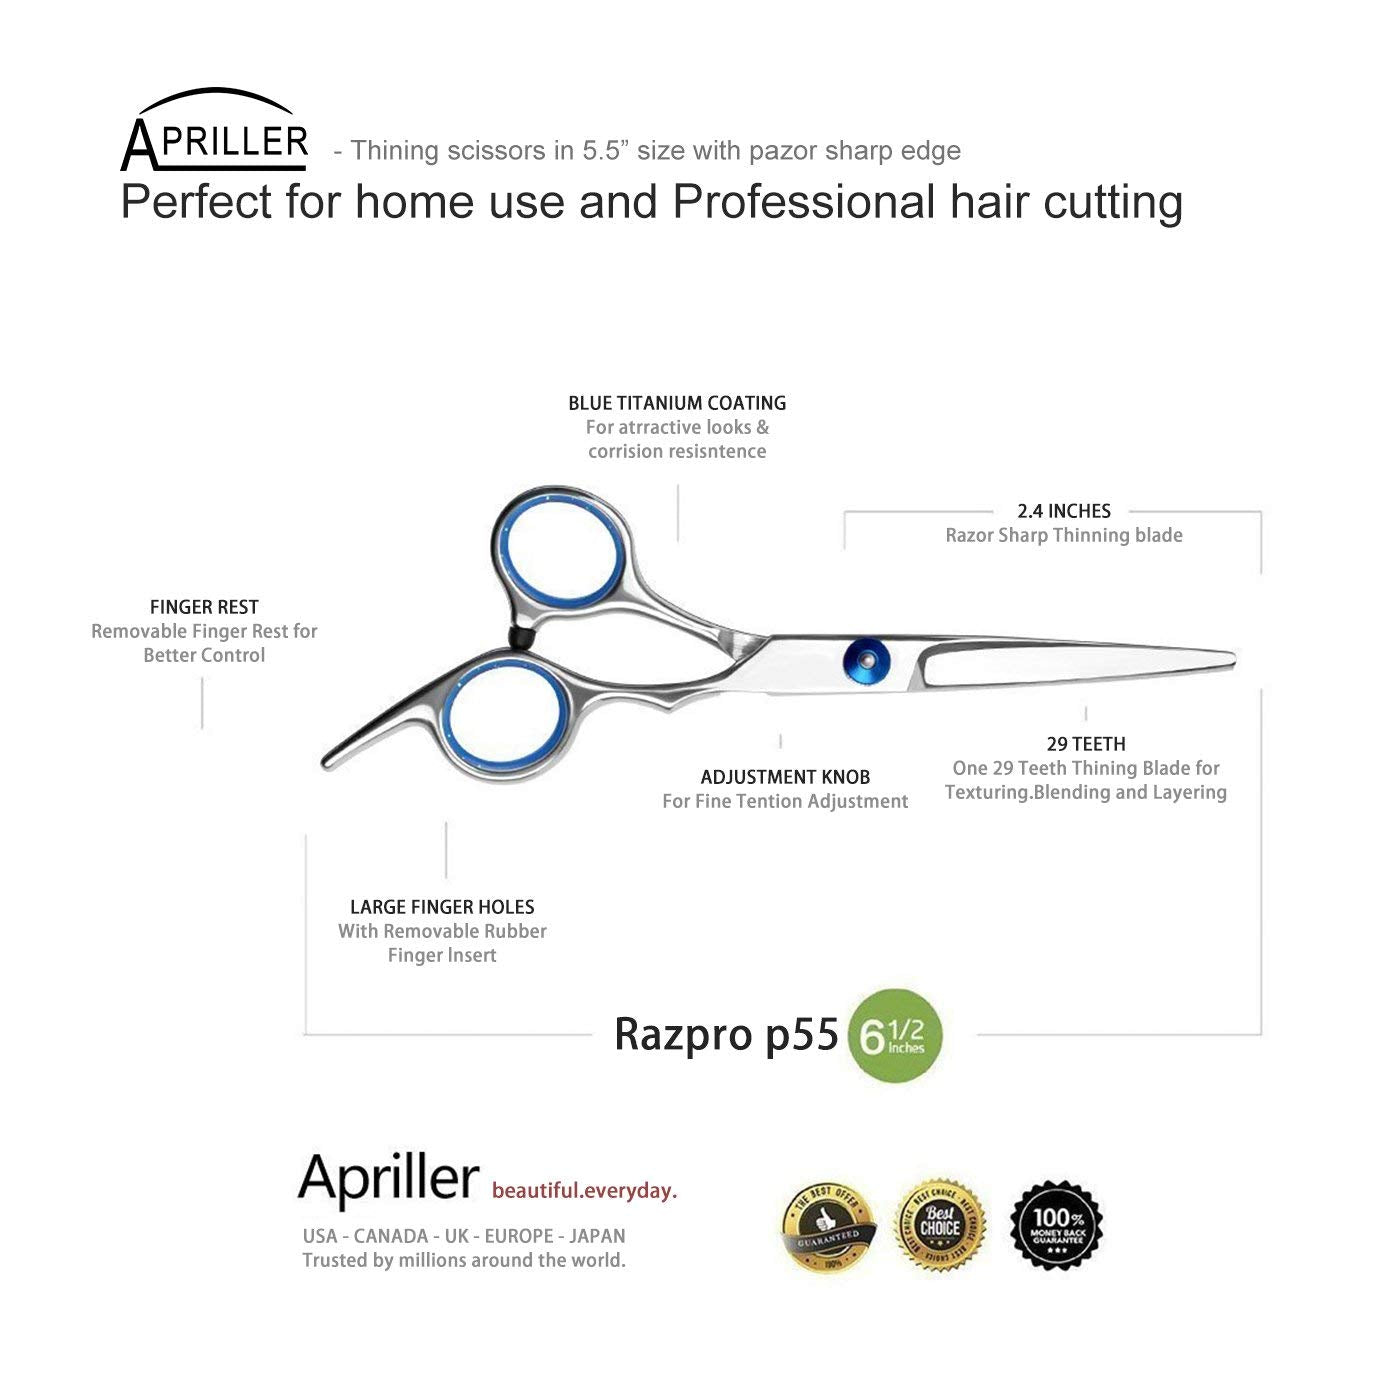 Hair Cutting Scissors/Thinning Shears/Professional Barber/Salon Razor Edge Tools set/Mustache Scissors and Barber Scissors with Fine Adjustment Screw-High Quality Japanese Stainless Steel kit-Apriller - SGTSHARP.COM